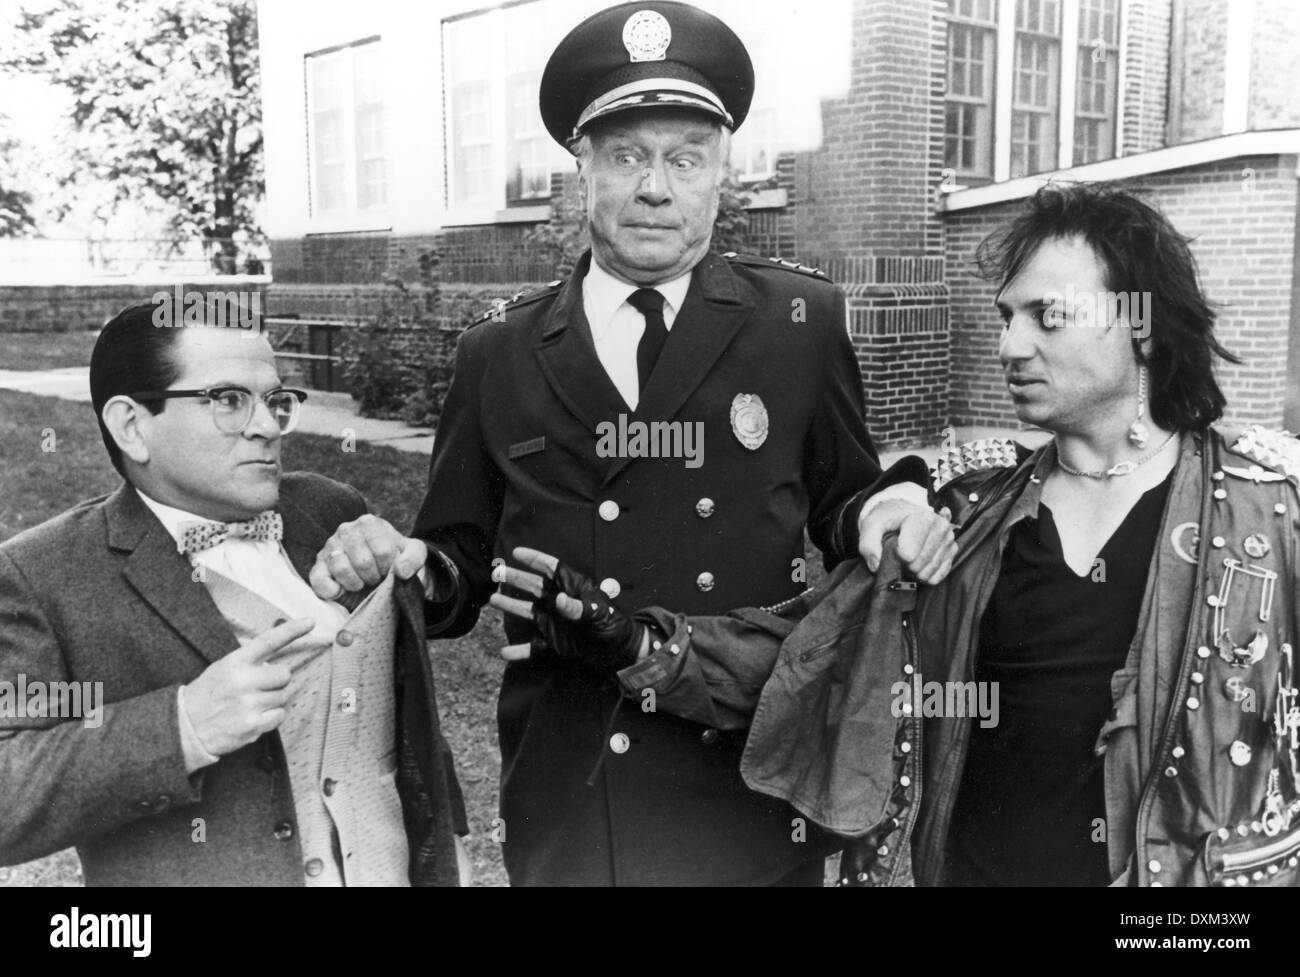 Police Academy Black and White Stock Photos & Images - Alamy